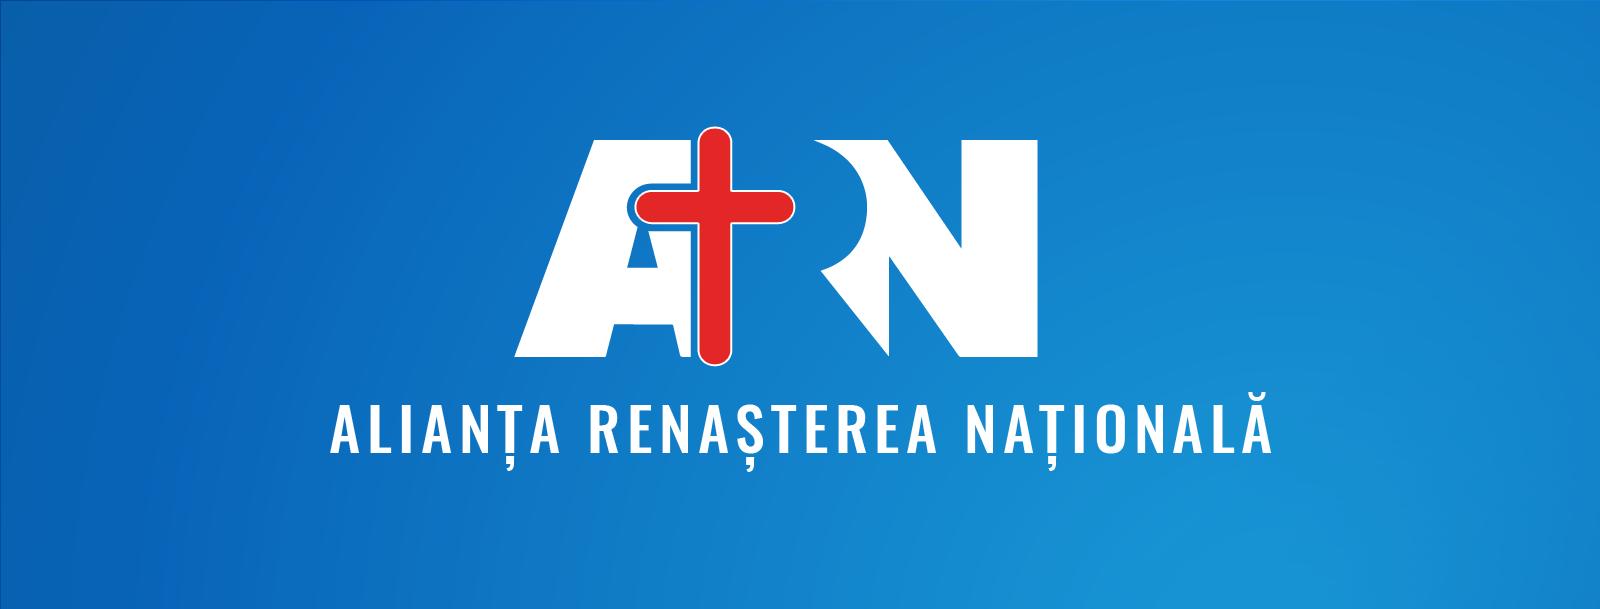 ALIANTA RENASTEREA NATIONALA